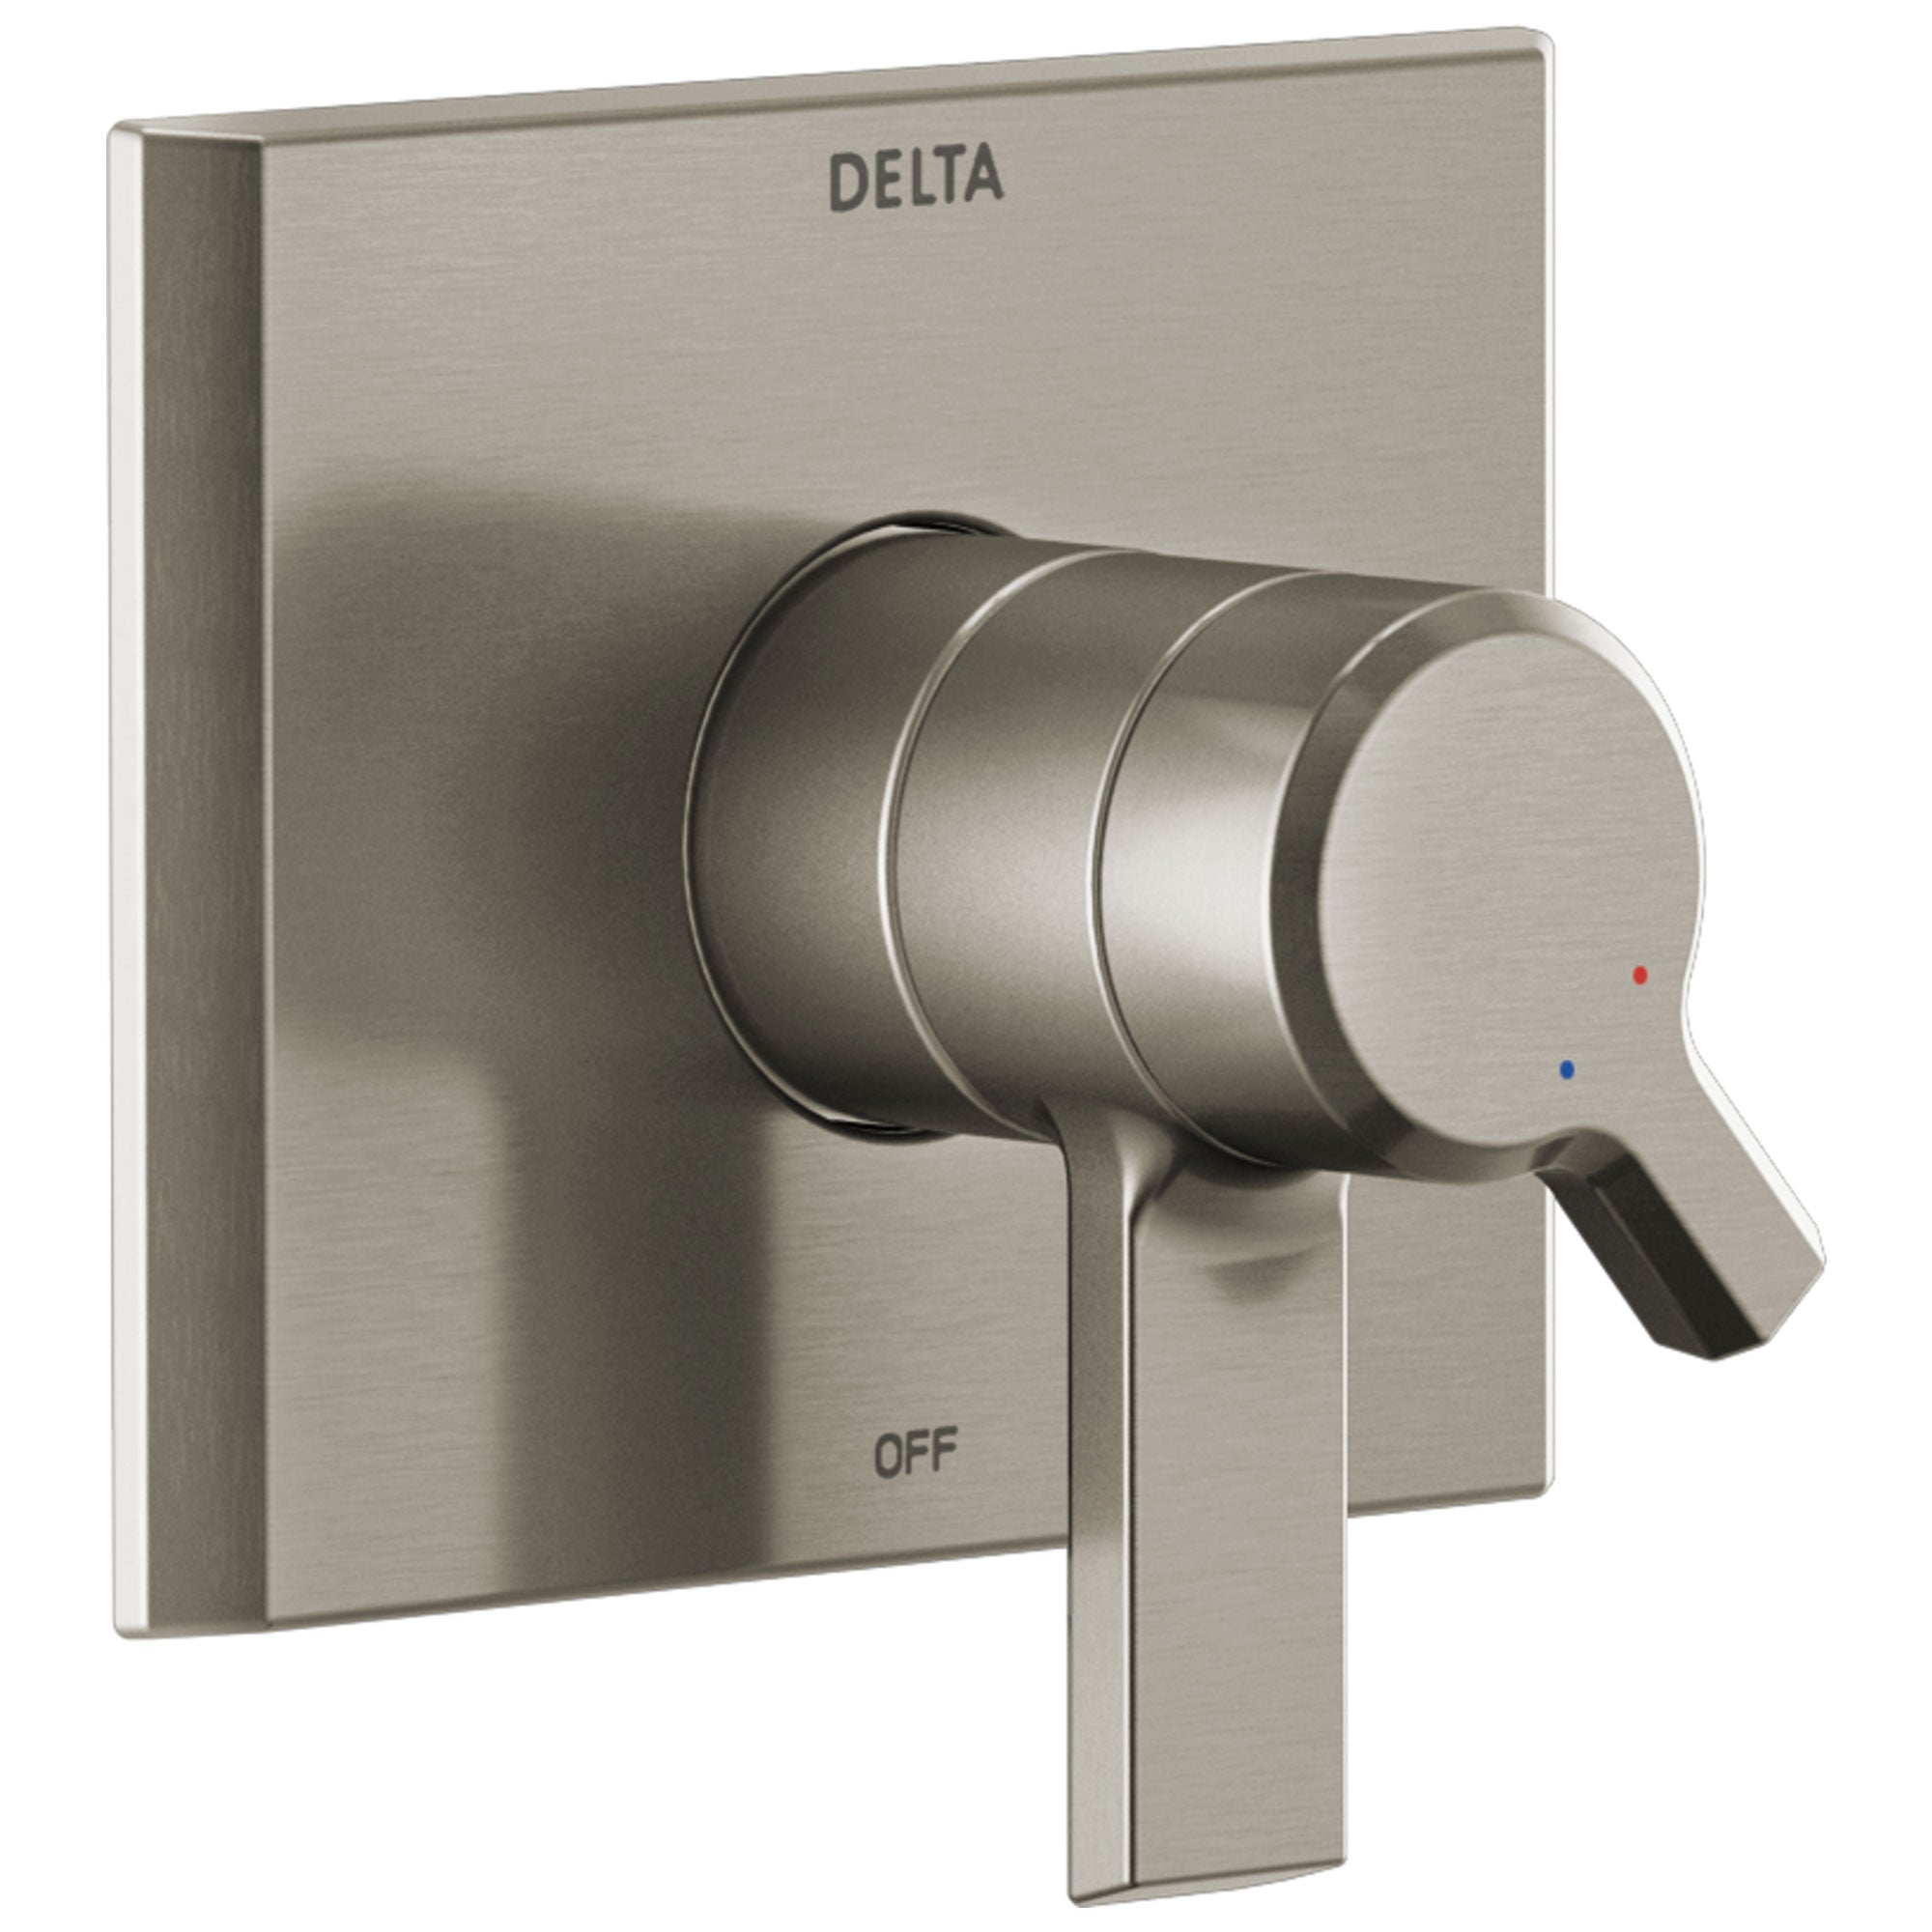 Delta Pivotal Stainless Steel Finish Monitor 17 Series Shower Faucet Control Only Trim Kit (Requires Valve) DT17099SS